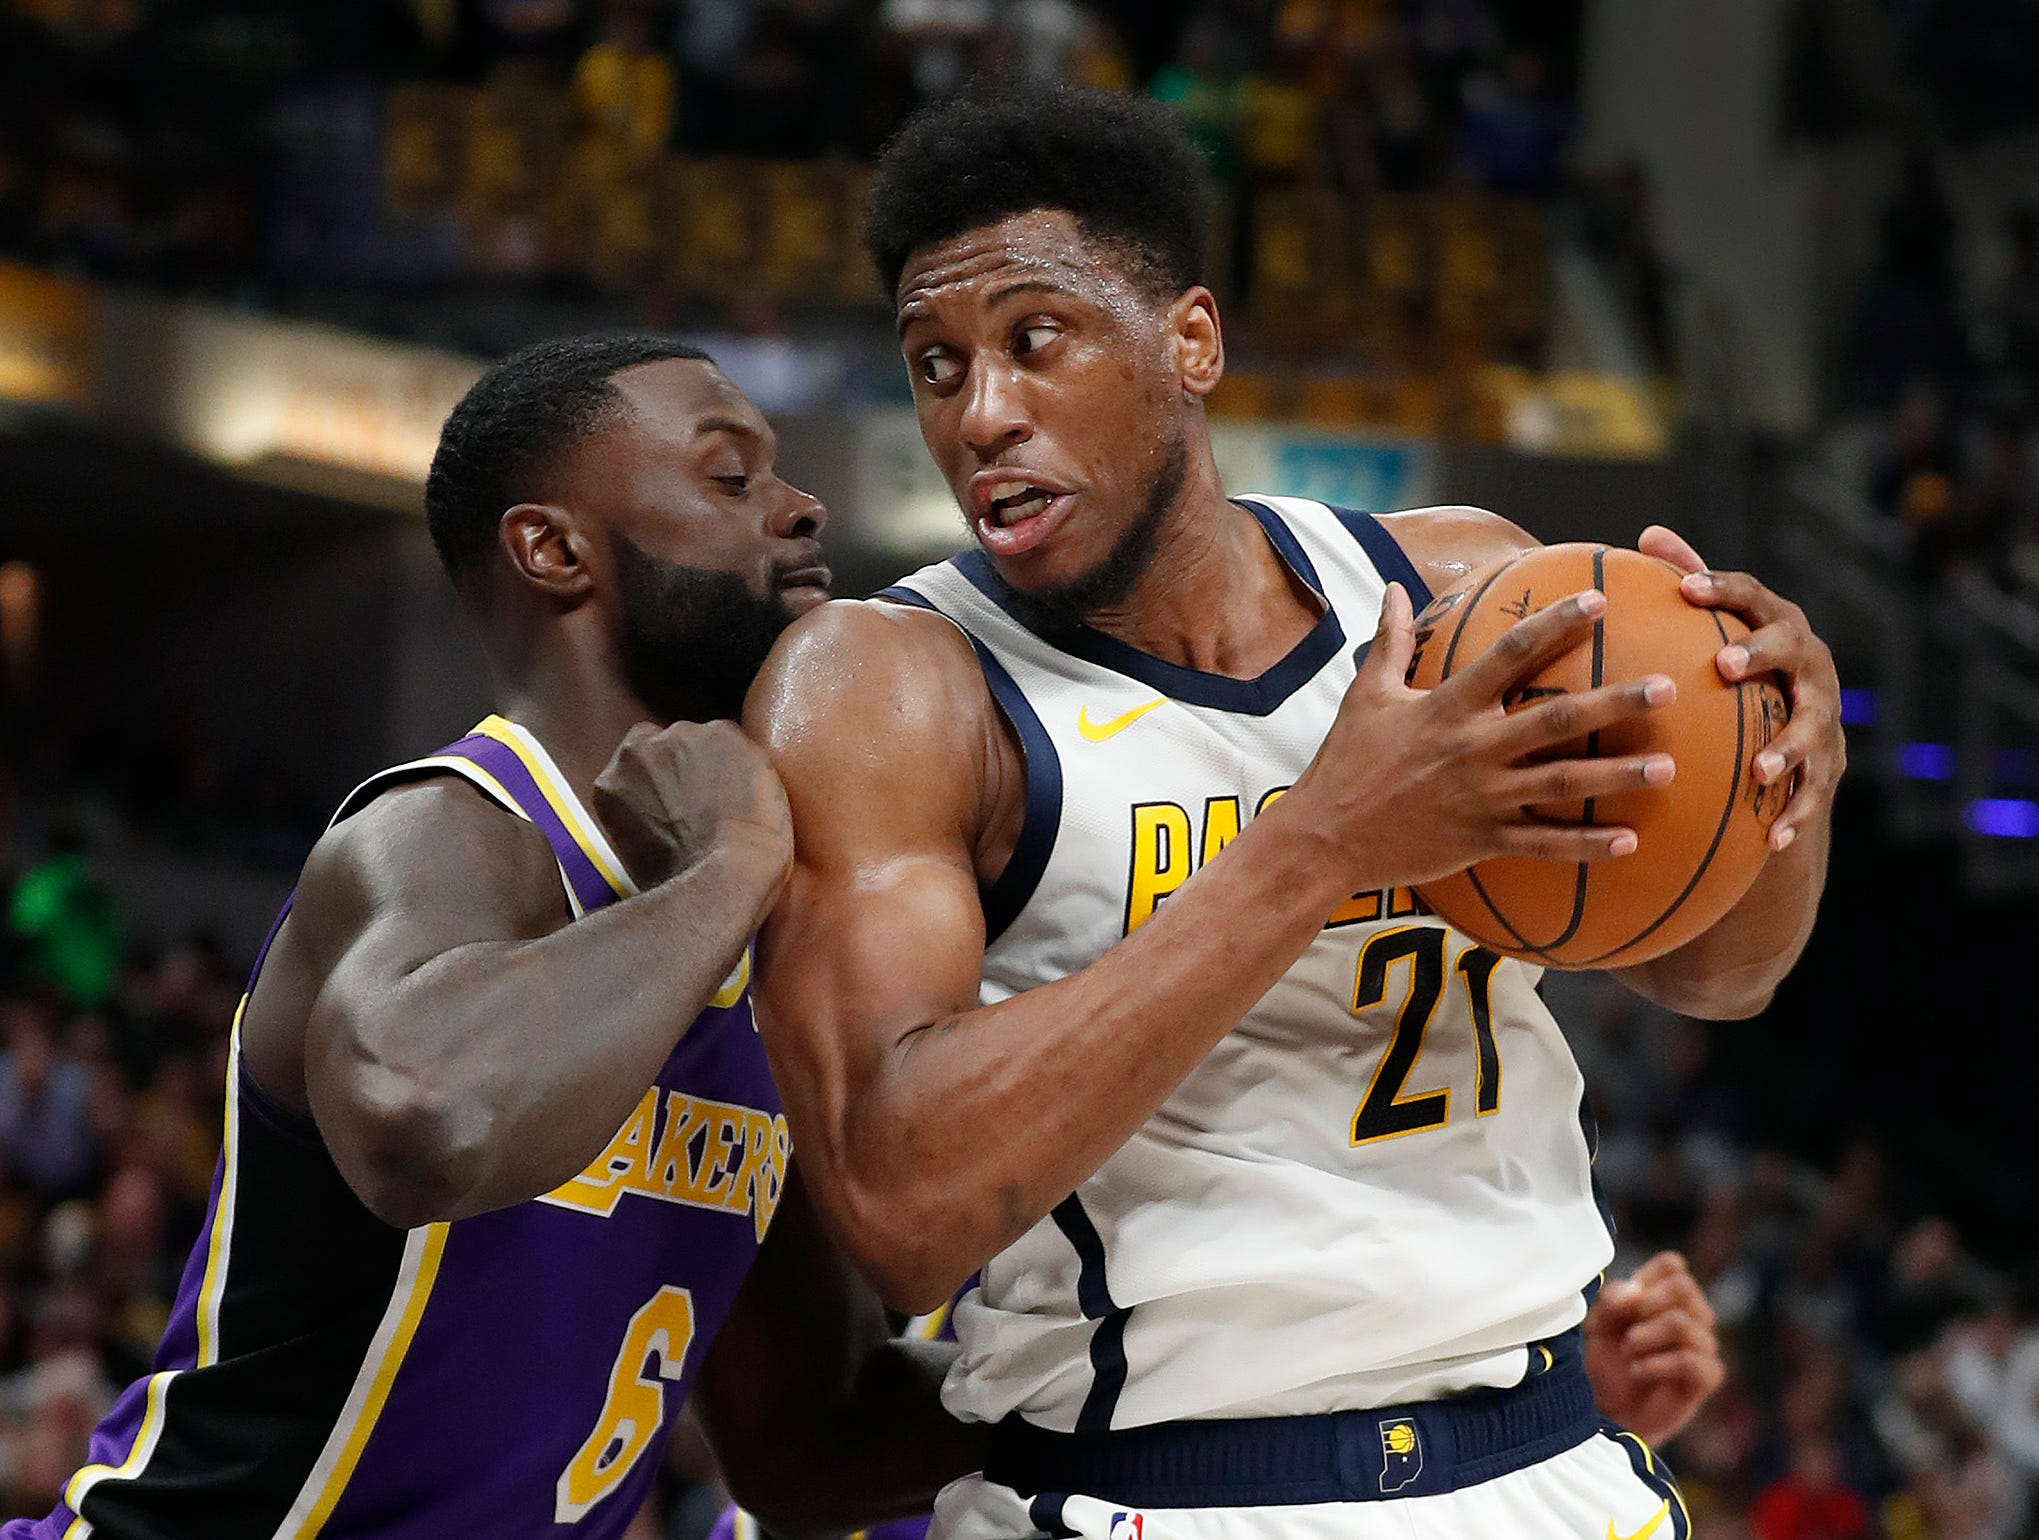 Indiana Pacers forward Thaddeus Young (21) spins on Los Angeles Lakers guard Lance Stephenson (6) in the second half of their game at Bankers Life Fieldhouse on Tuesday, Feb. 5, 2019.